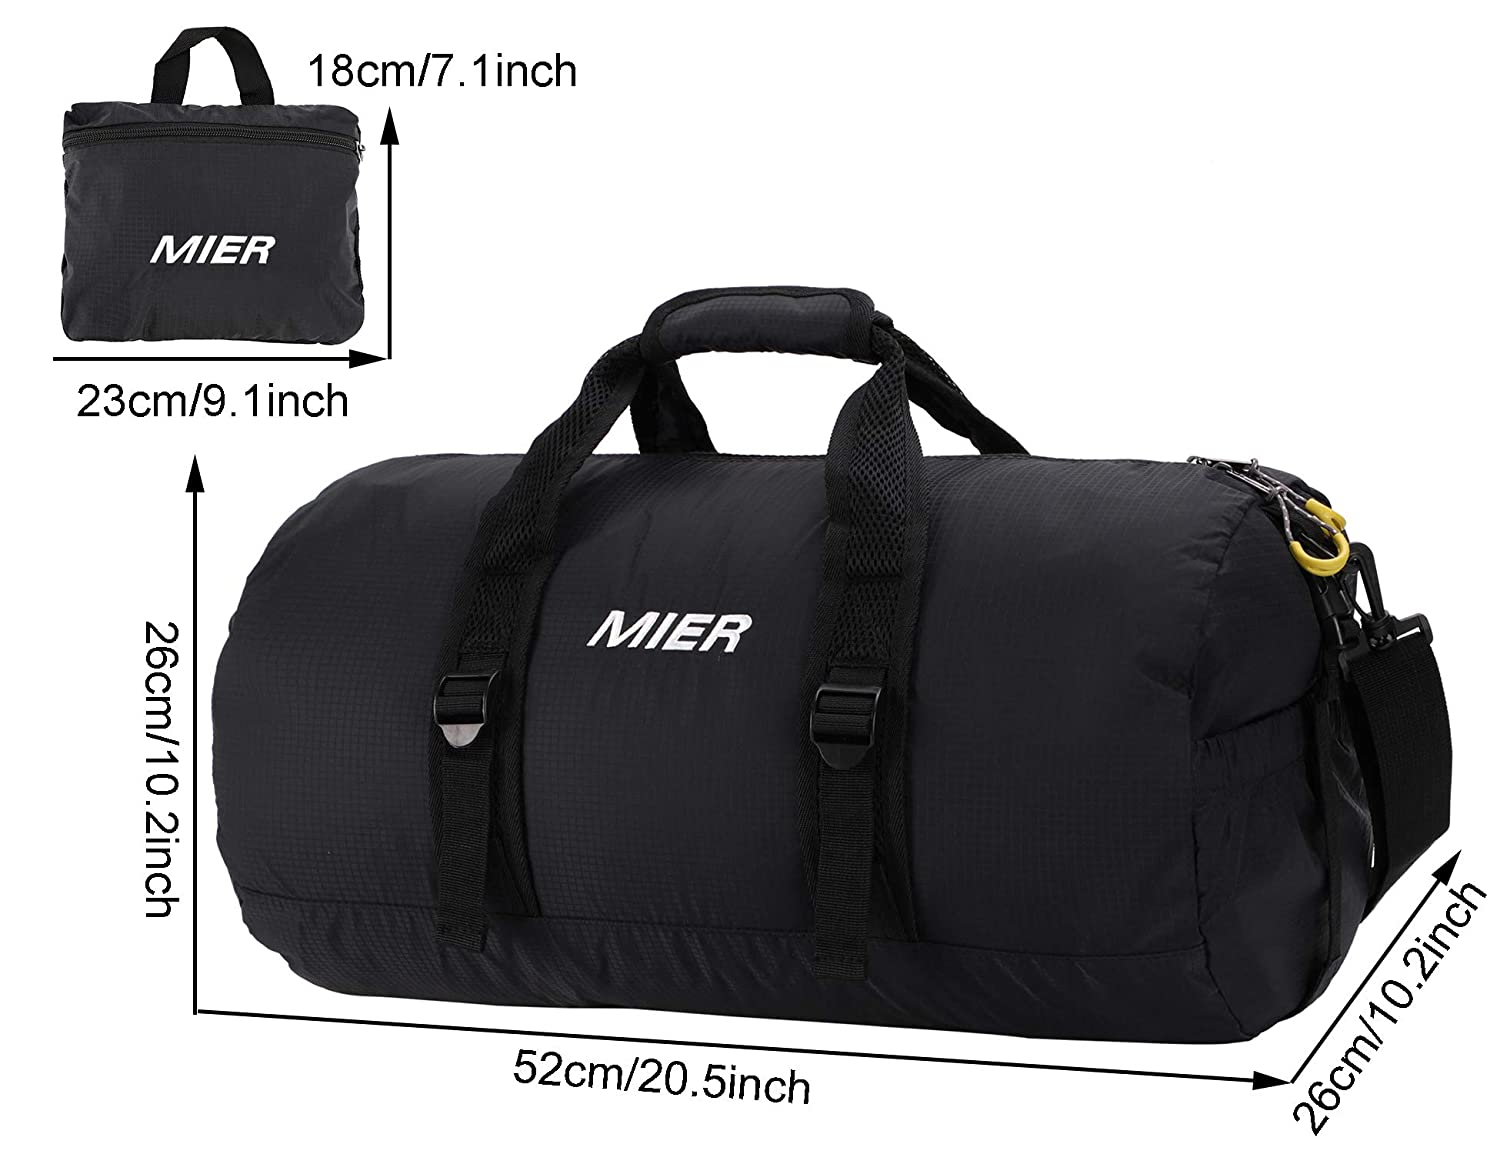 72e0d7bfc MIER Foldable Small Duffel Bag Lightweight for Sports, Gyms, Yoga, Travel,  Black larger image